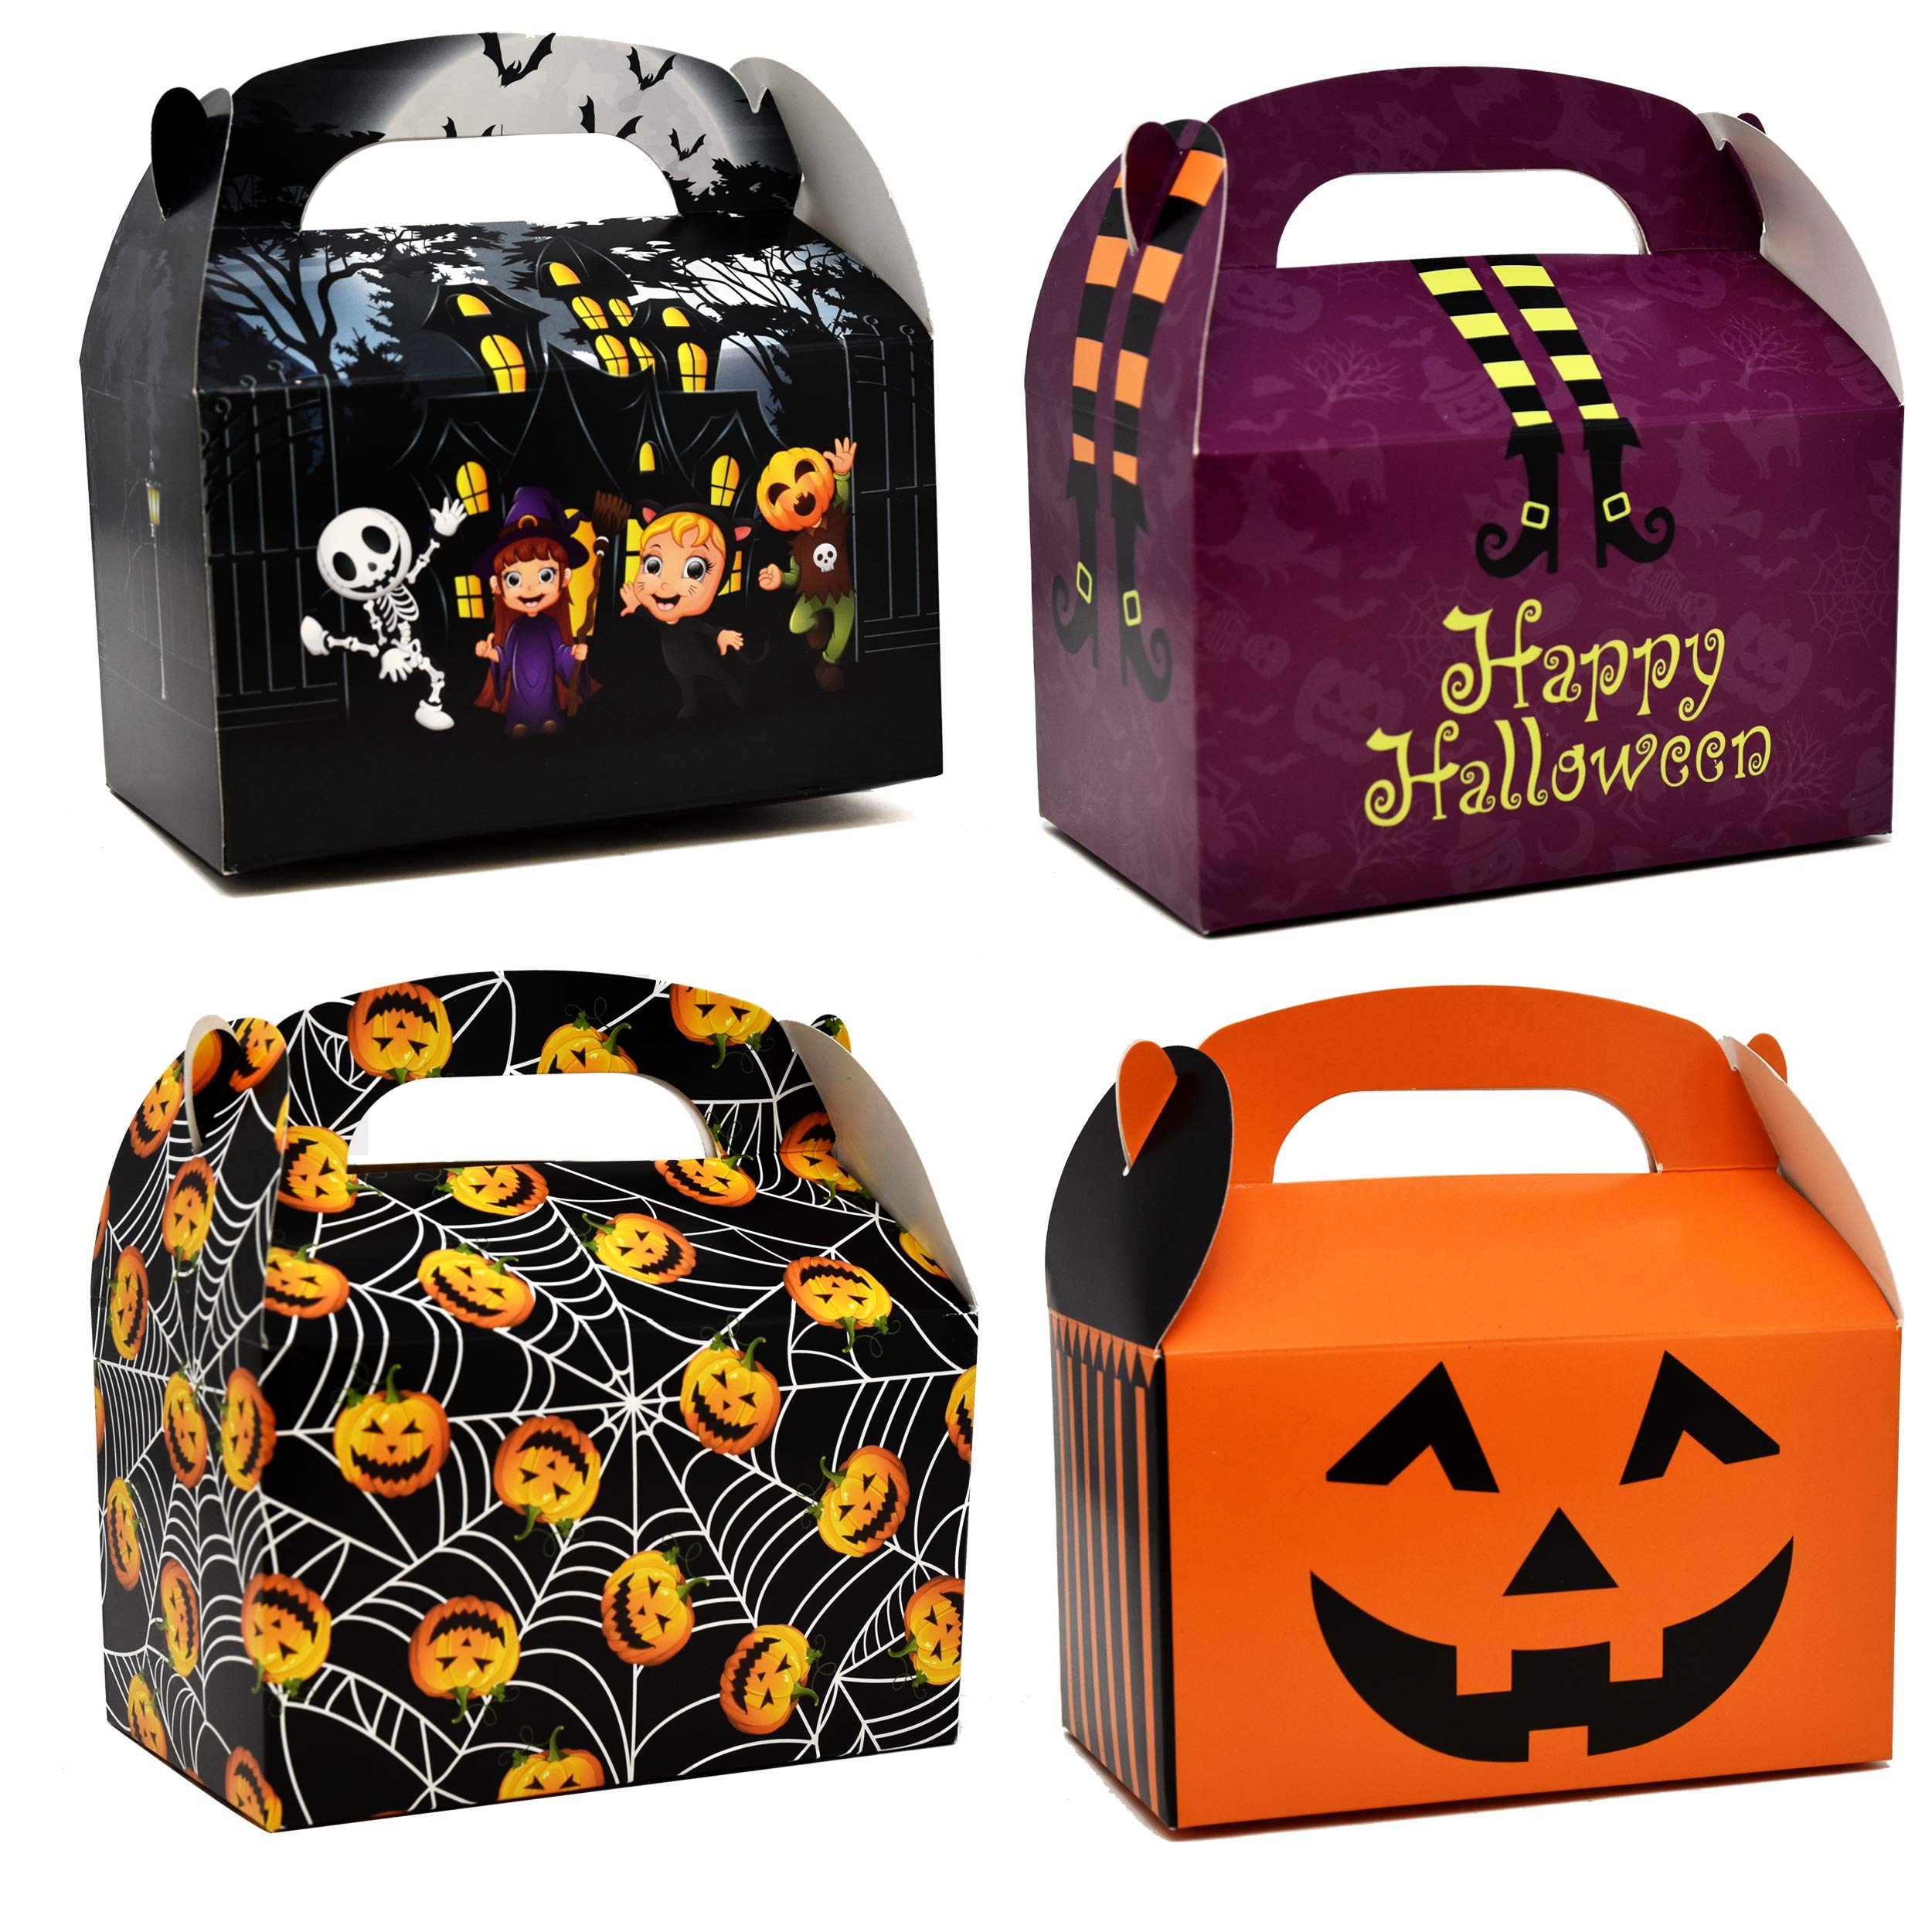 48 3D Halloween Cardboard Trick or Treat Boxes Haunted House Gable Boxes for School Classroom Party Favor Supplies Spider Web Witches Legs Jack-o-Lantern Pumpkin Candy Goodie Cookie Box Gift Boutique by Gift Boutique